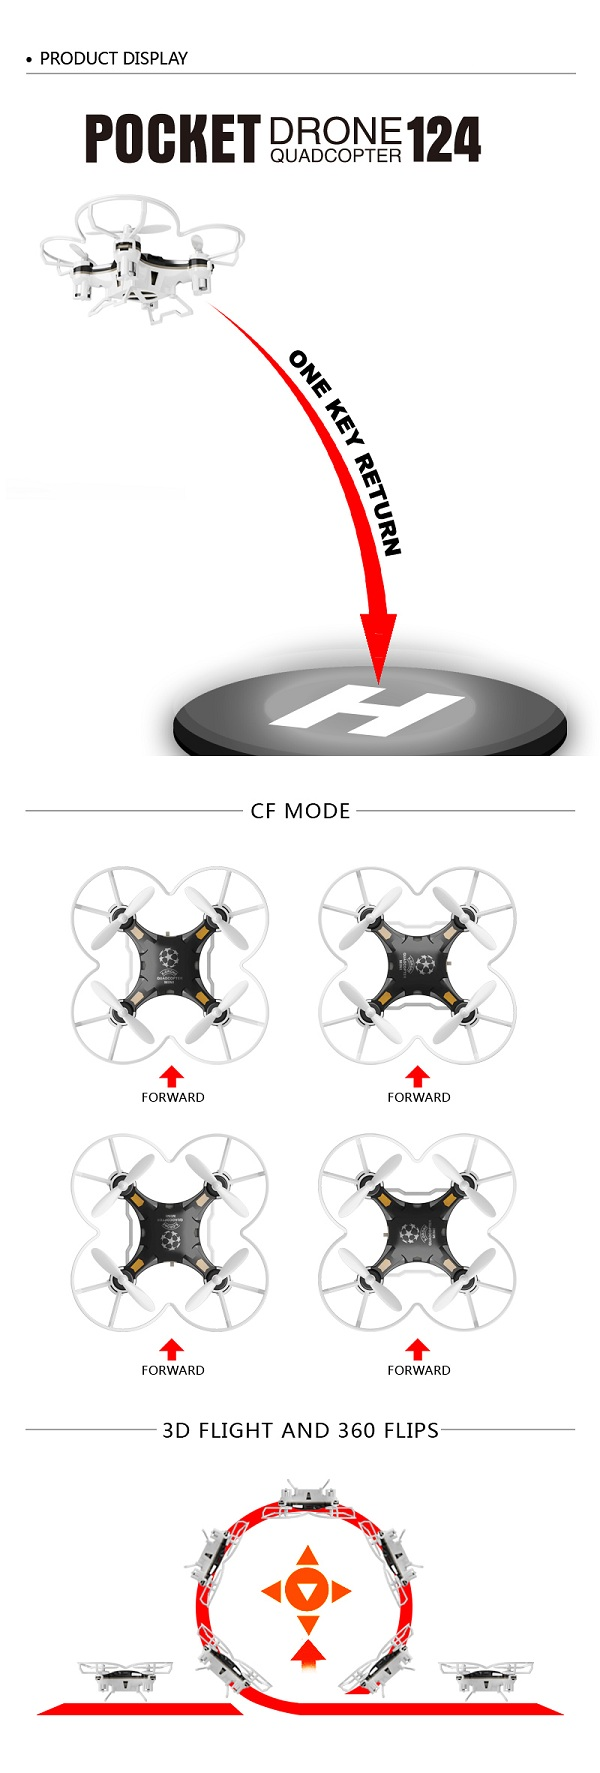 SBEGO_124_Mini_Pocket_Drone_FQ777-124_4CH_6Axis_Gyro_Quadcopter_With_Switchable_Controller_RTF_Free_Spare_Part_Give_15